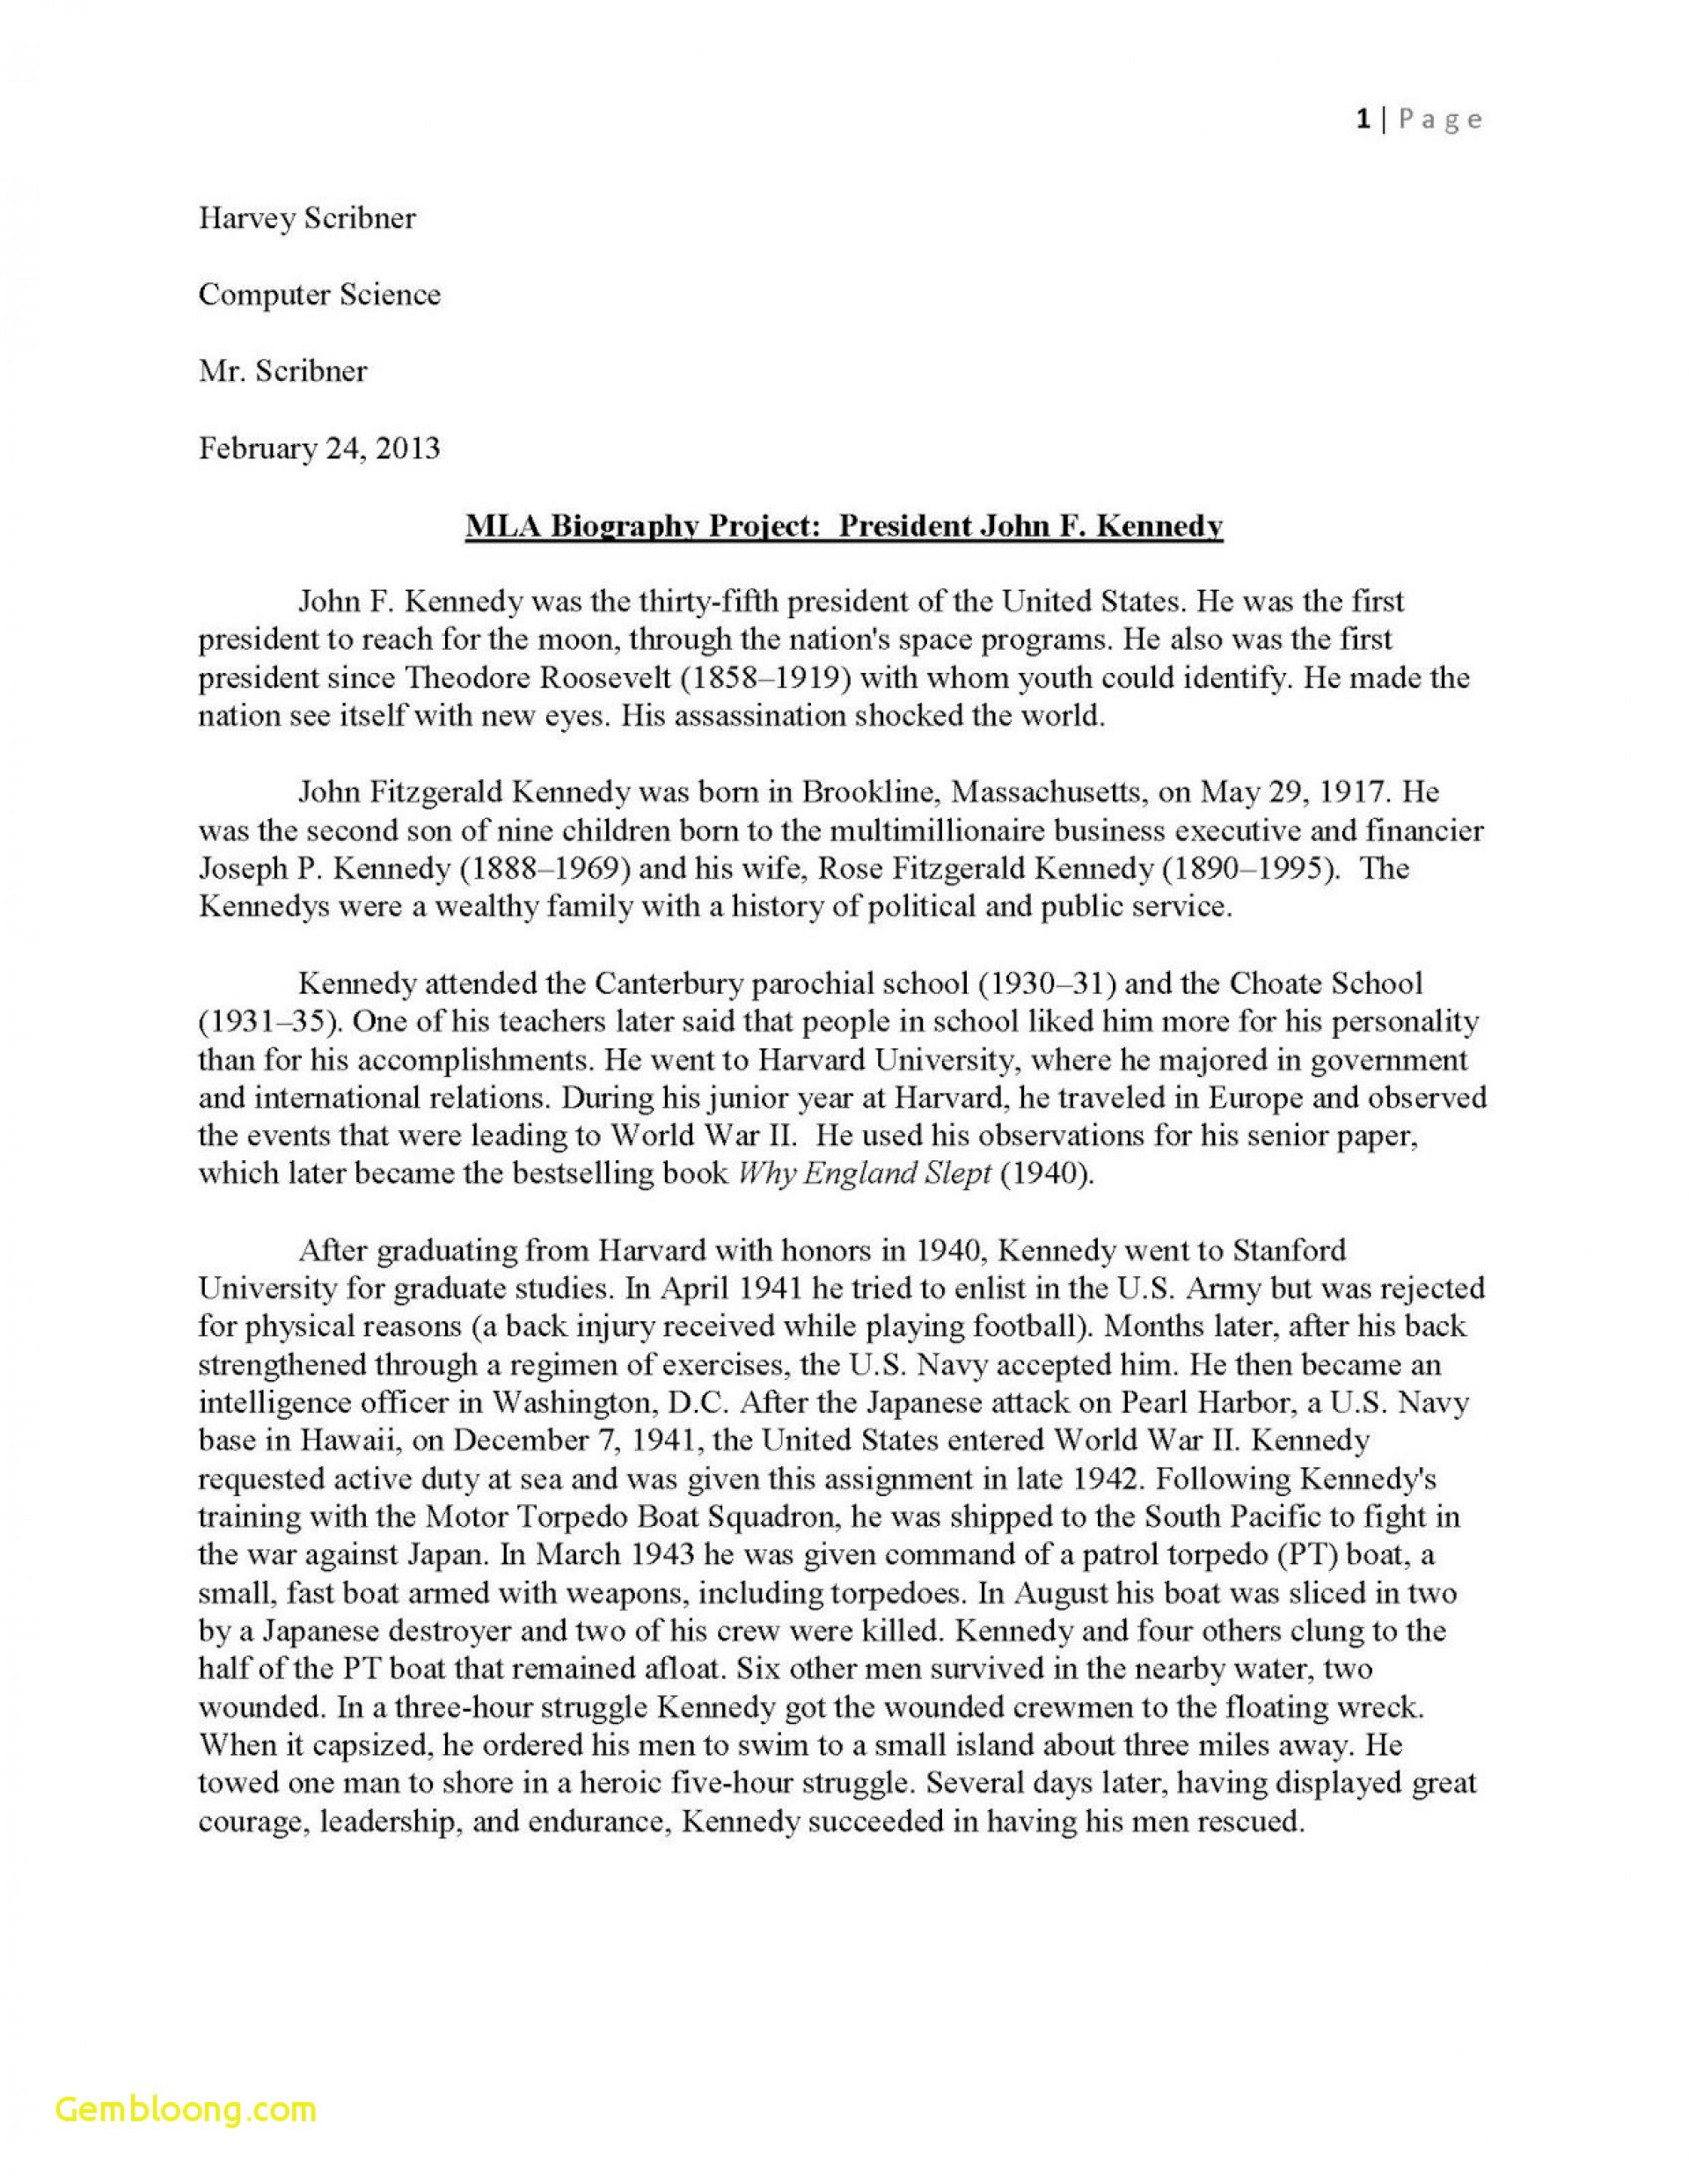 002 Essay Example Common Application Examples Unique Mon App Essays Etame Mibawa Of Formidable The Ivy League Failure 1920